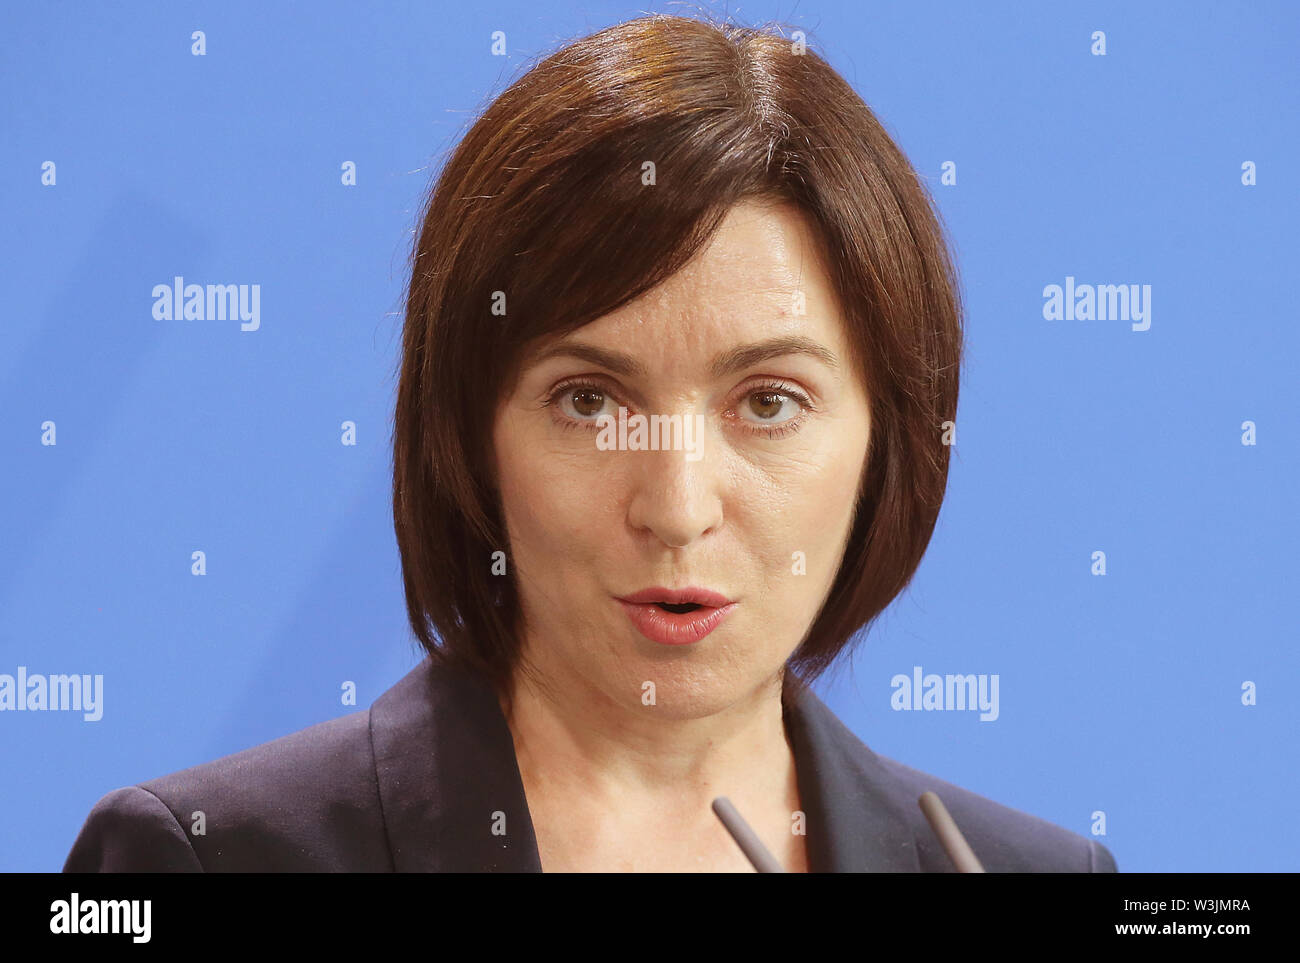 Berlin, Germany. 16th July, 2019. Maia Sandu, Moldovan Prime Minister, answers questions from journalists in the Federal Chancellery after her meeting with the Chancellor. Credit: Wolfgang Kumm/dpa/Alamy Live News - Stock Image